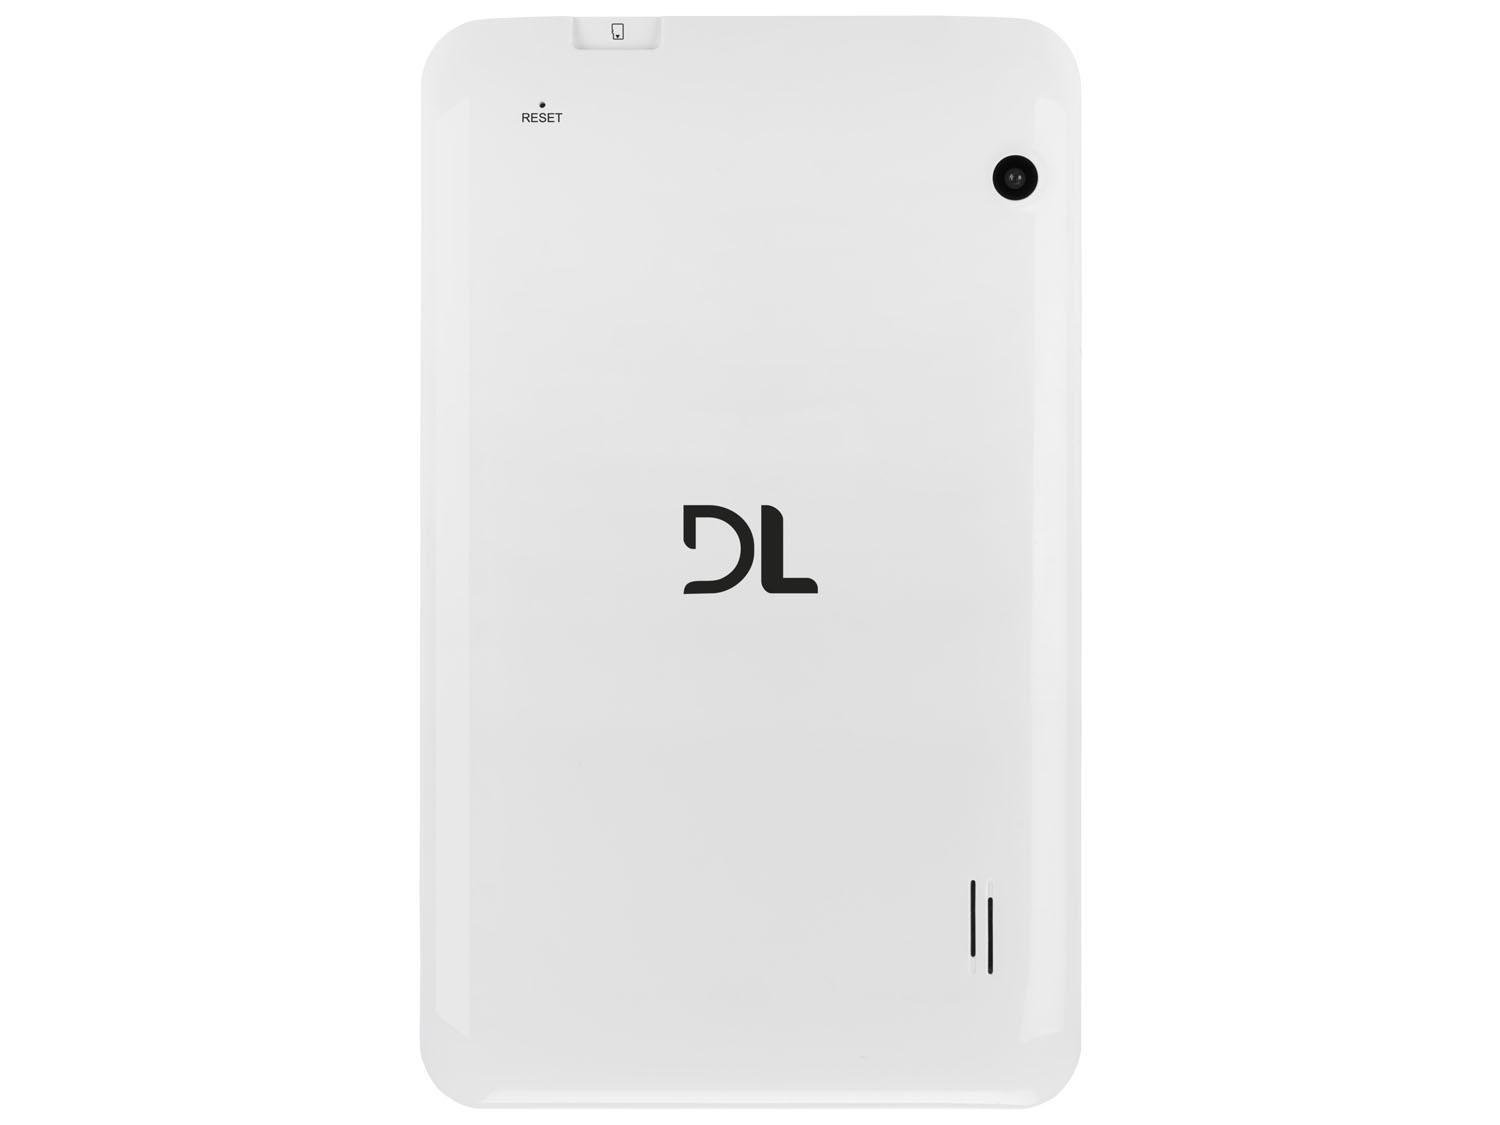 Foto 4 - Tablet DL e-Volution S 8GB 7 Wi-Fi Android 4.4 - Proc. Dual Core Câmera Integrada